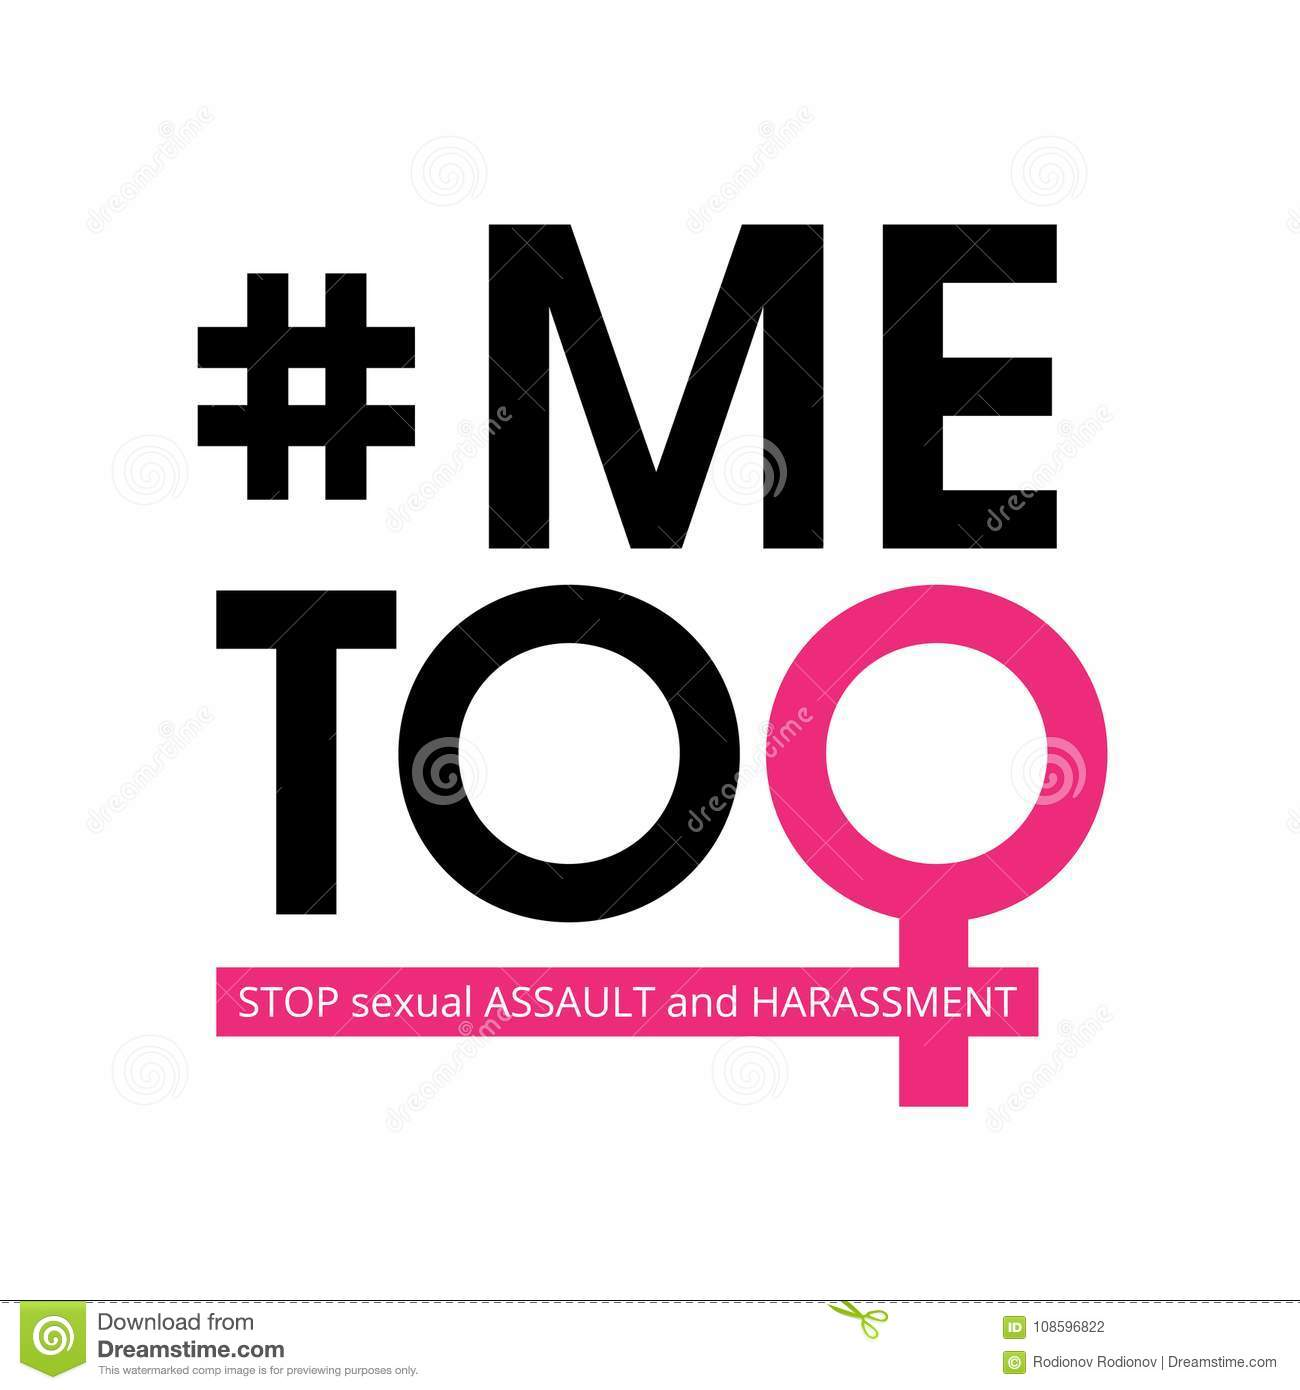 Me Too social movement hashtag against sexual assault and harassment. Vector illustration isolated on white background